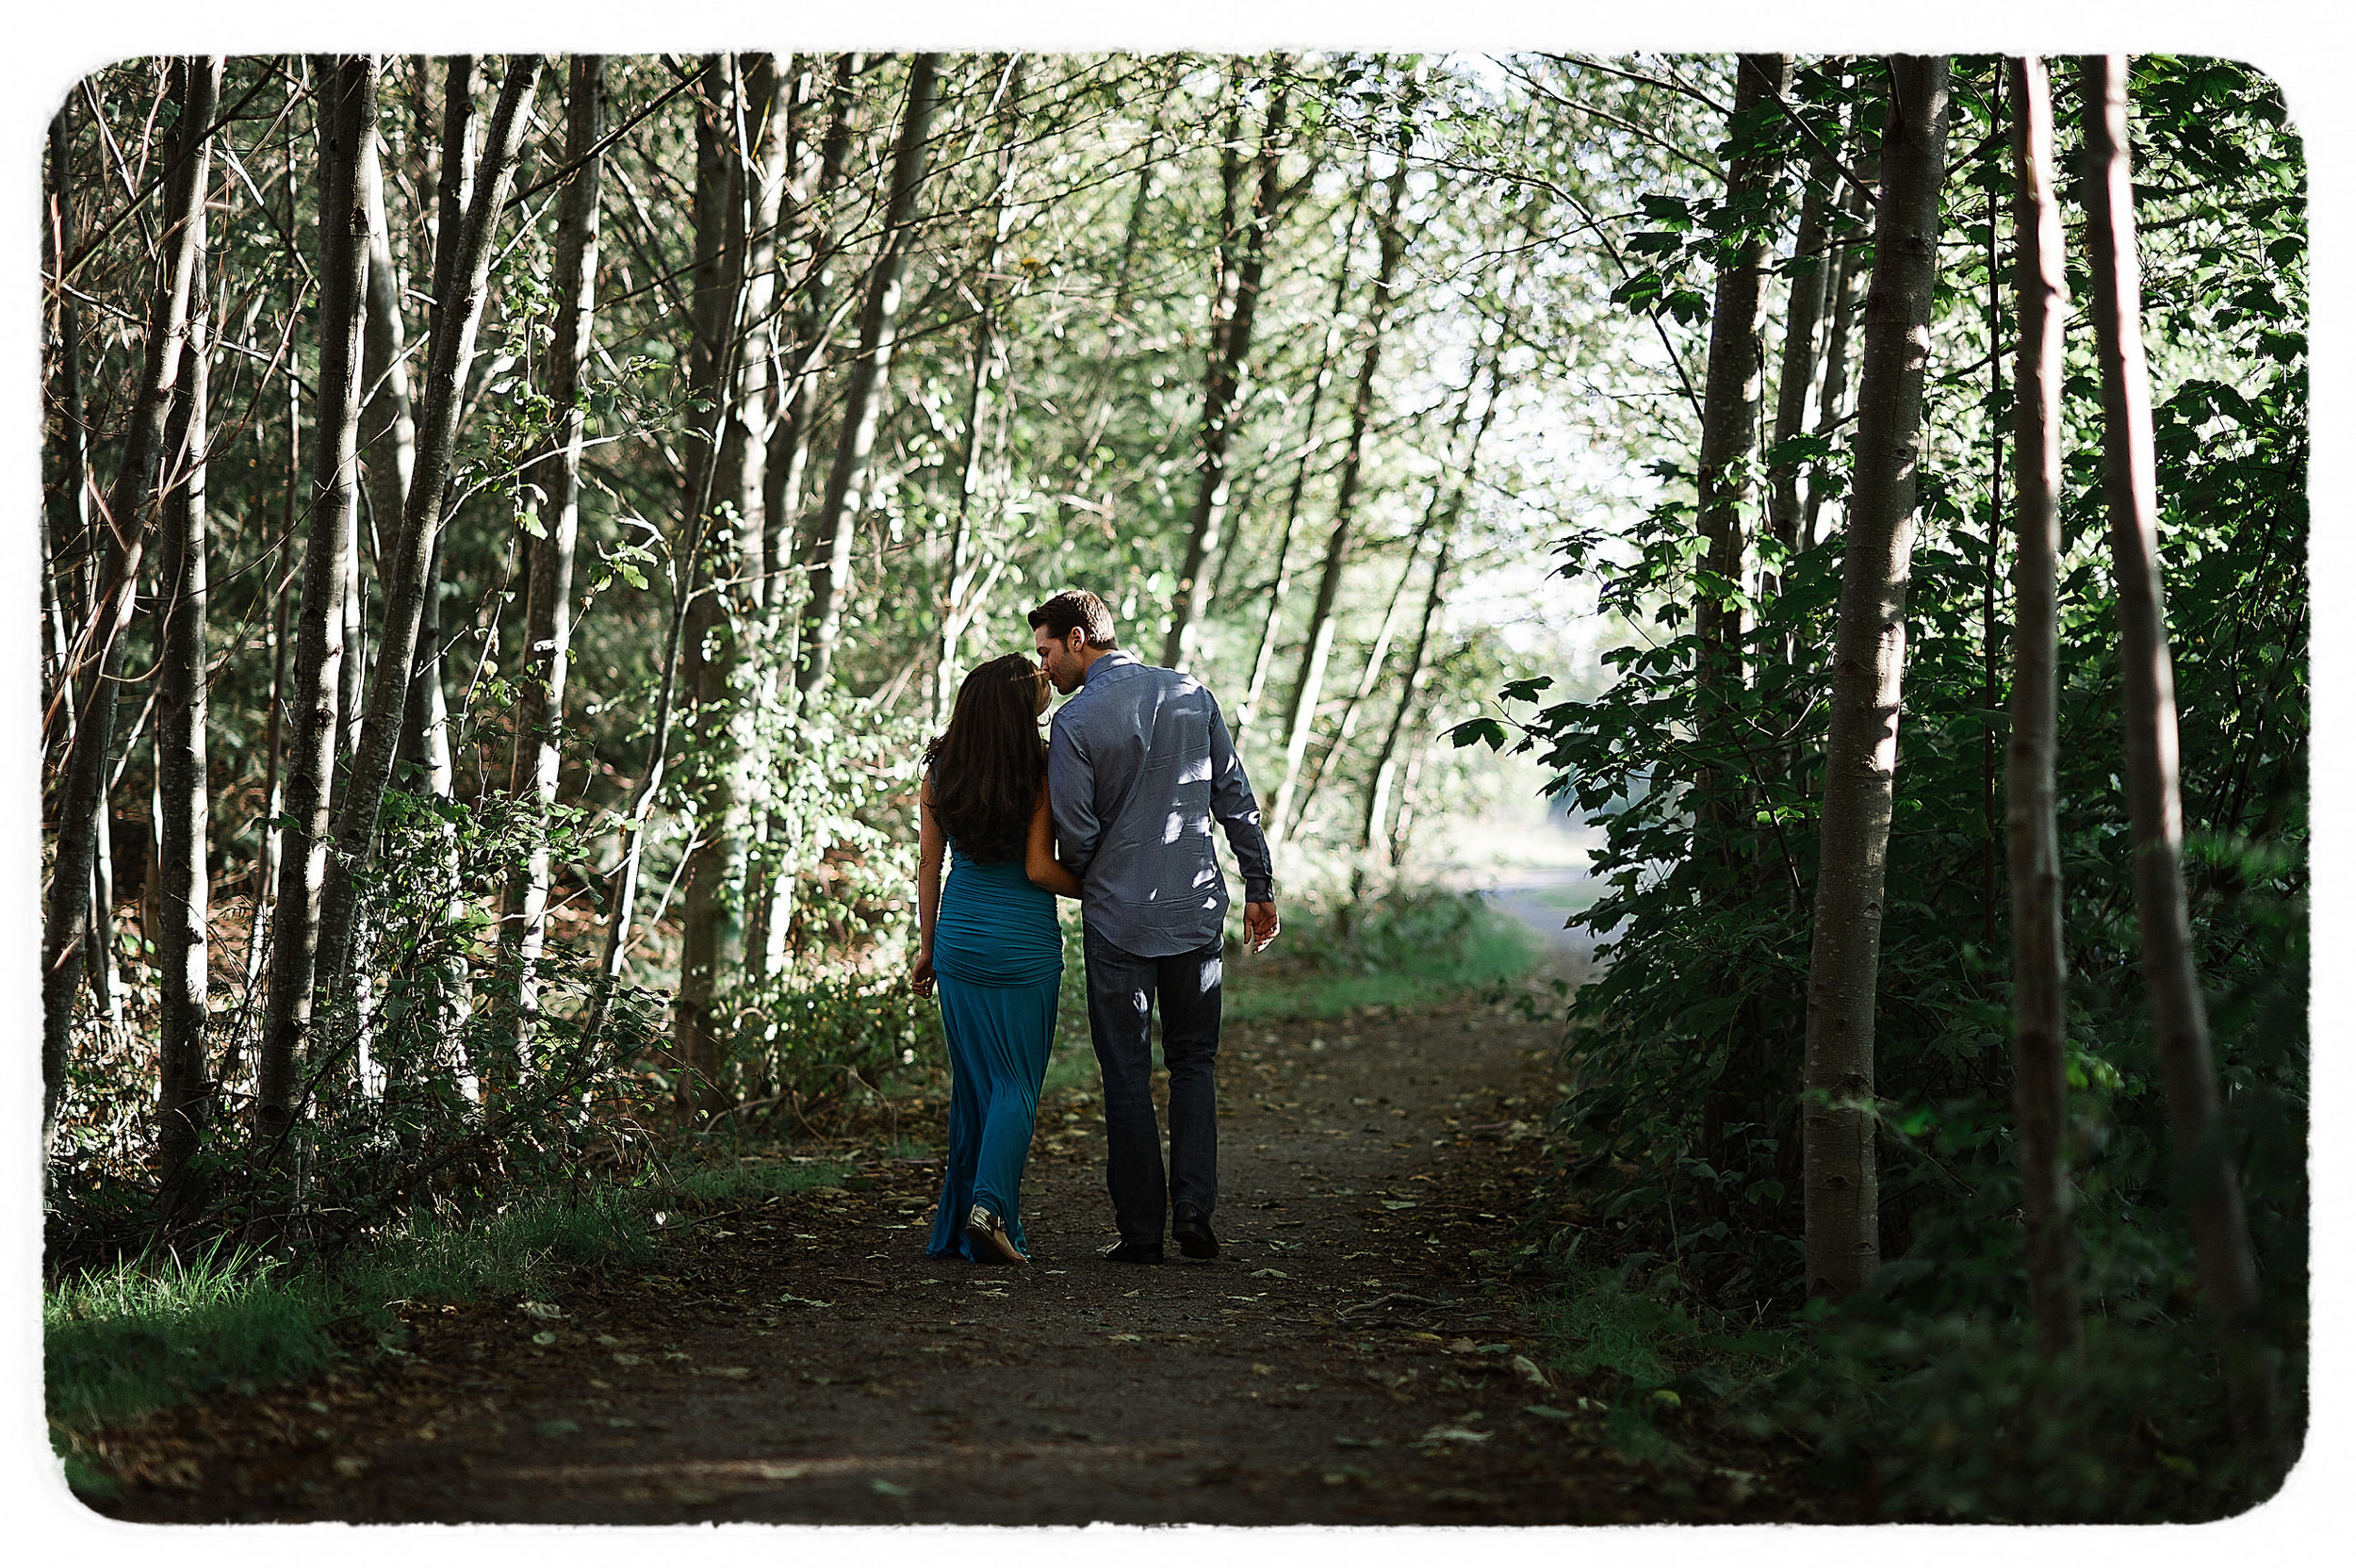 Kelly&Mike-EngagementSession-OriginalCollection-34Film.jpg